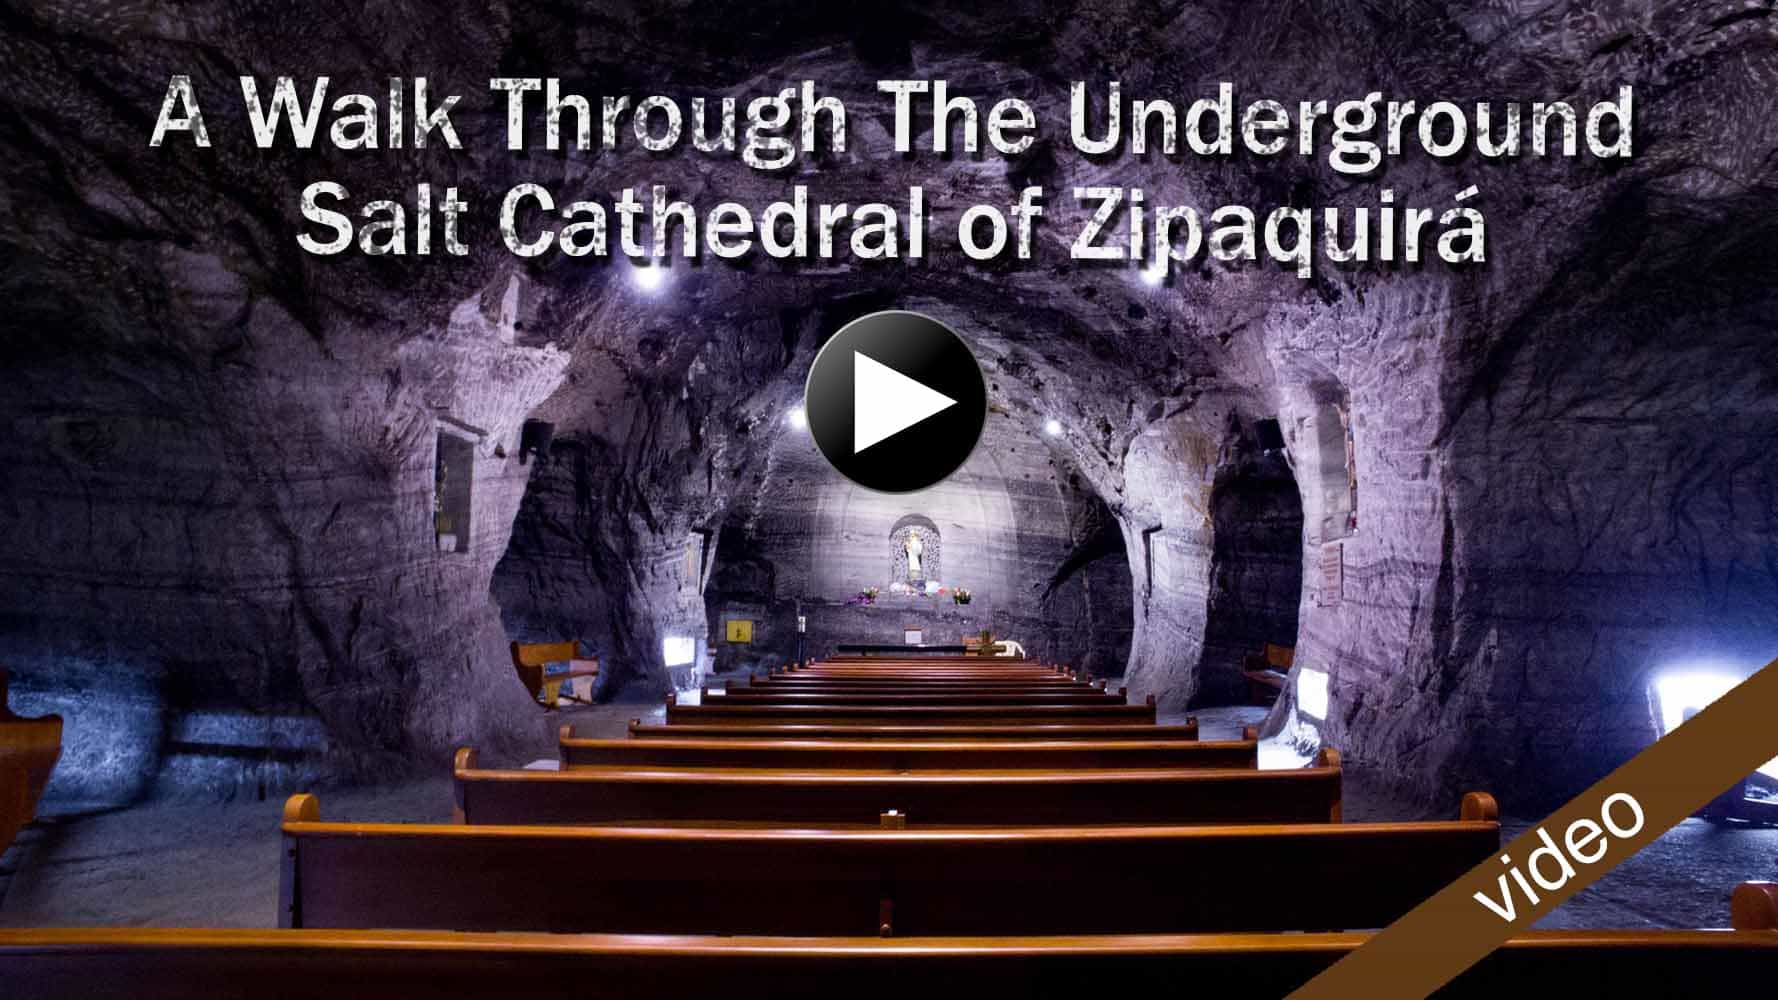 2 weeks in Colombia - itinerary for the salt cathedral of Zipaquira